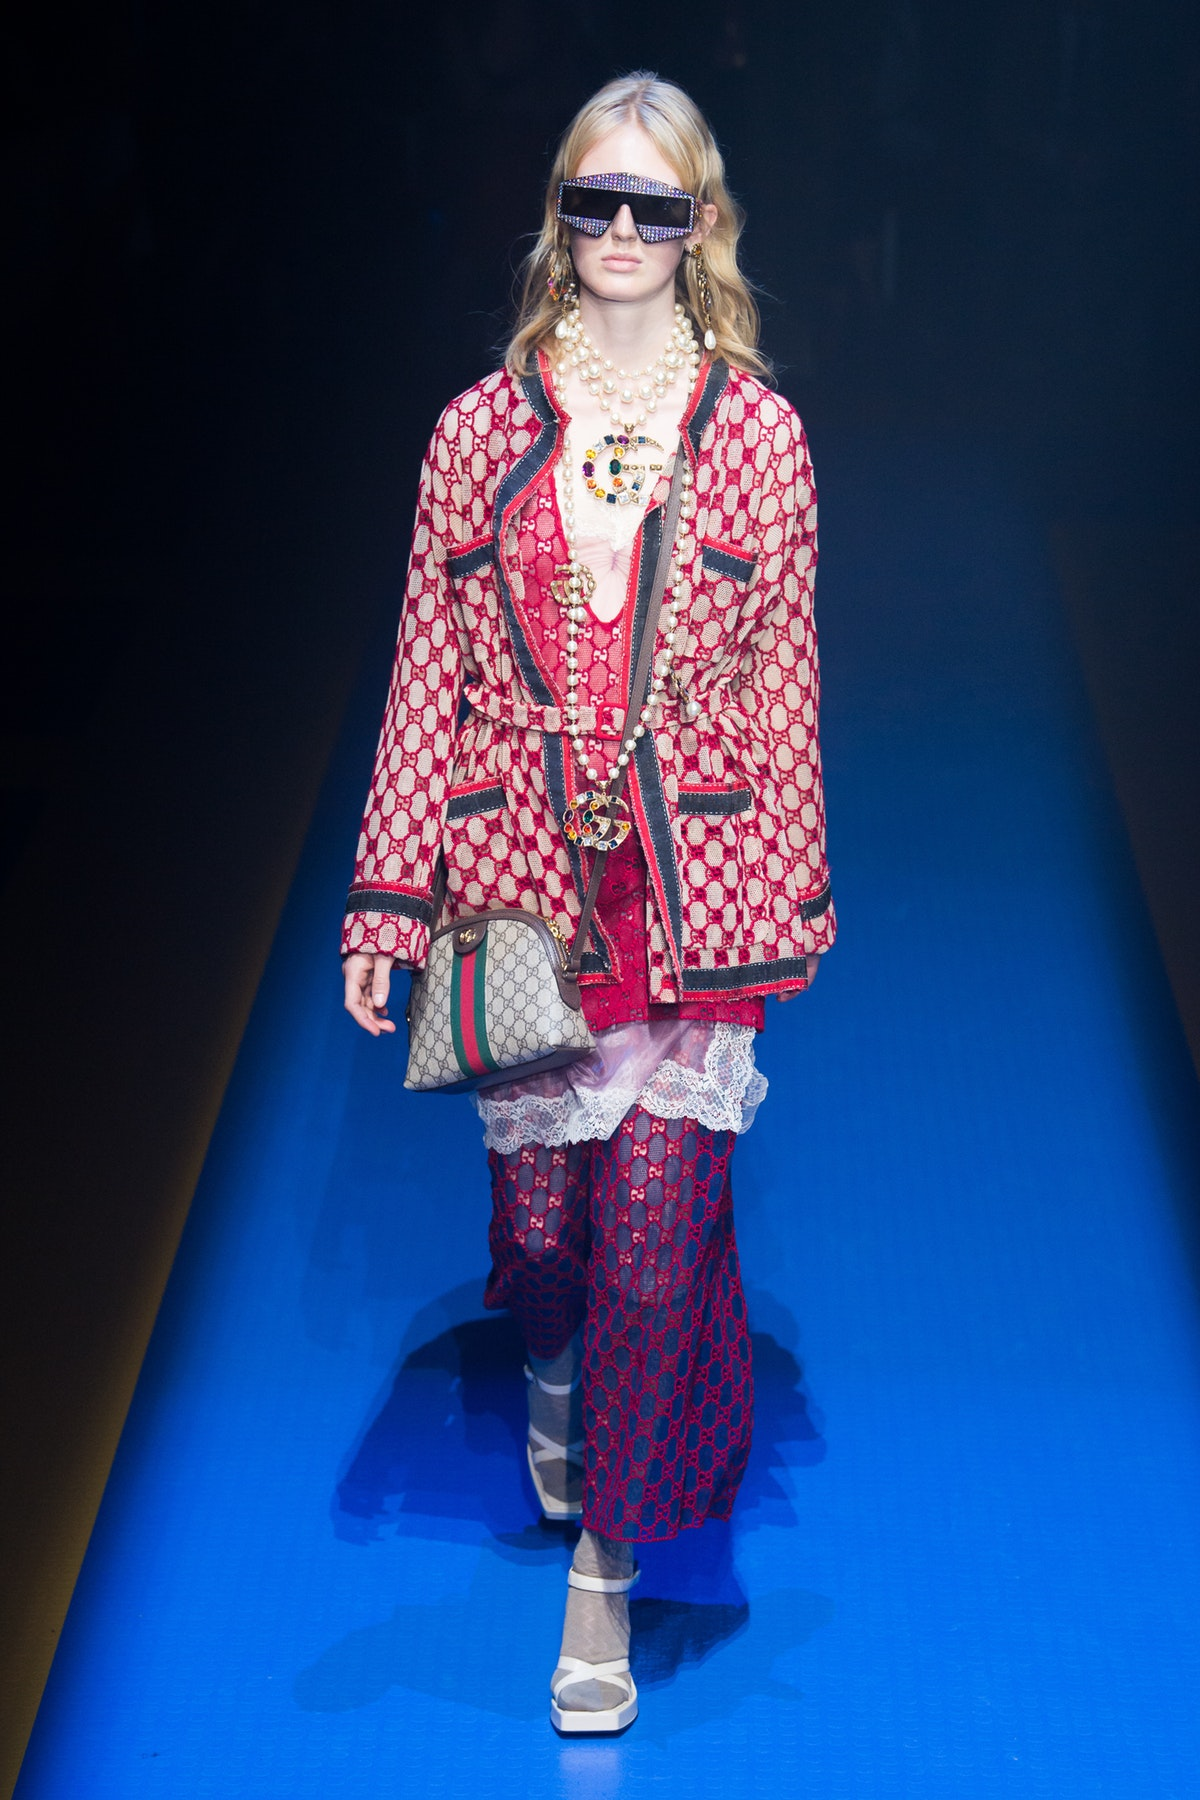 gucci_look_9_ready_to_wear_spring_2018.jpeg